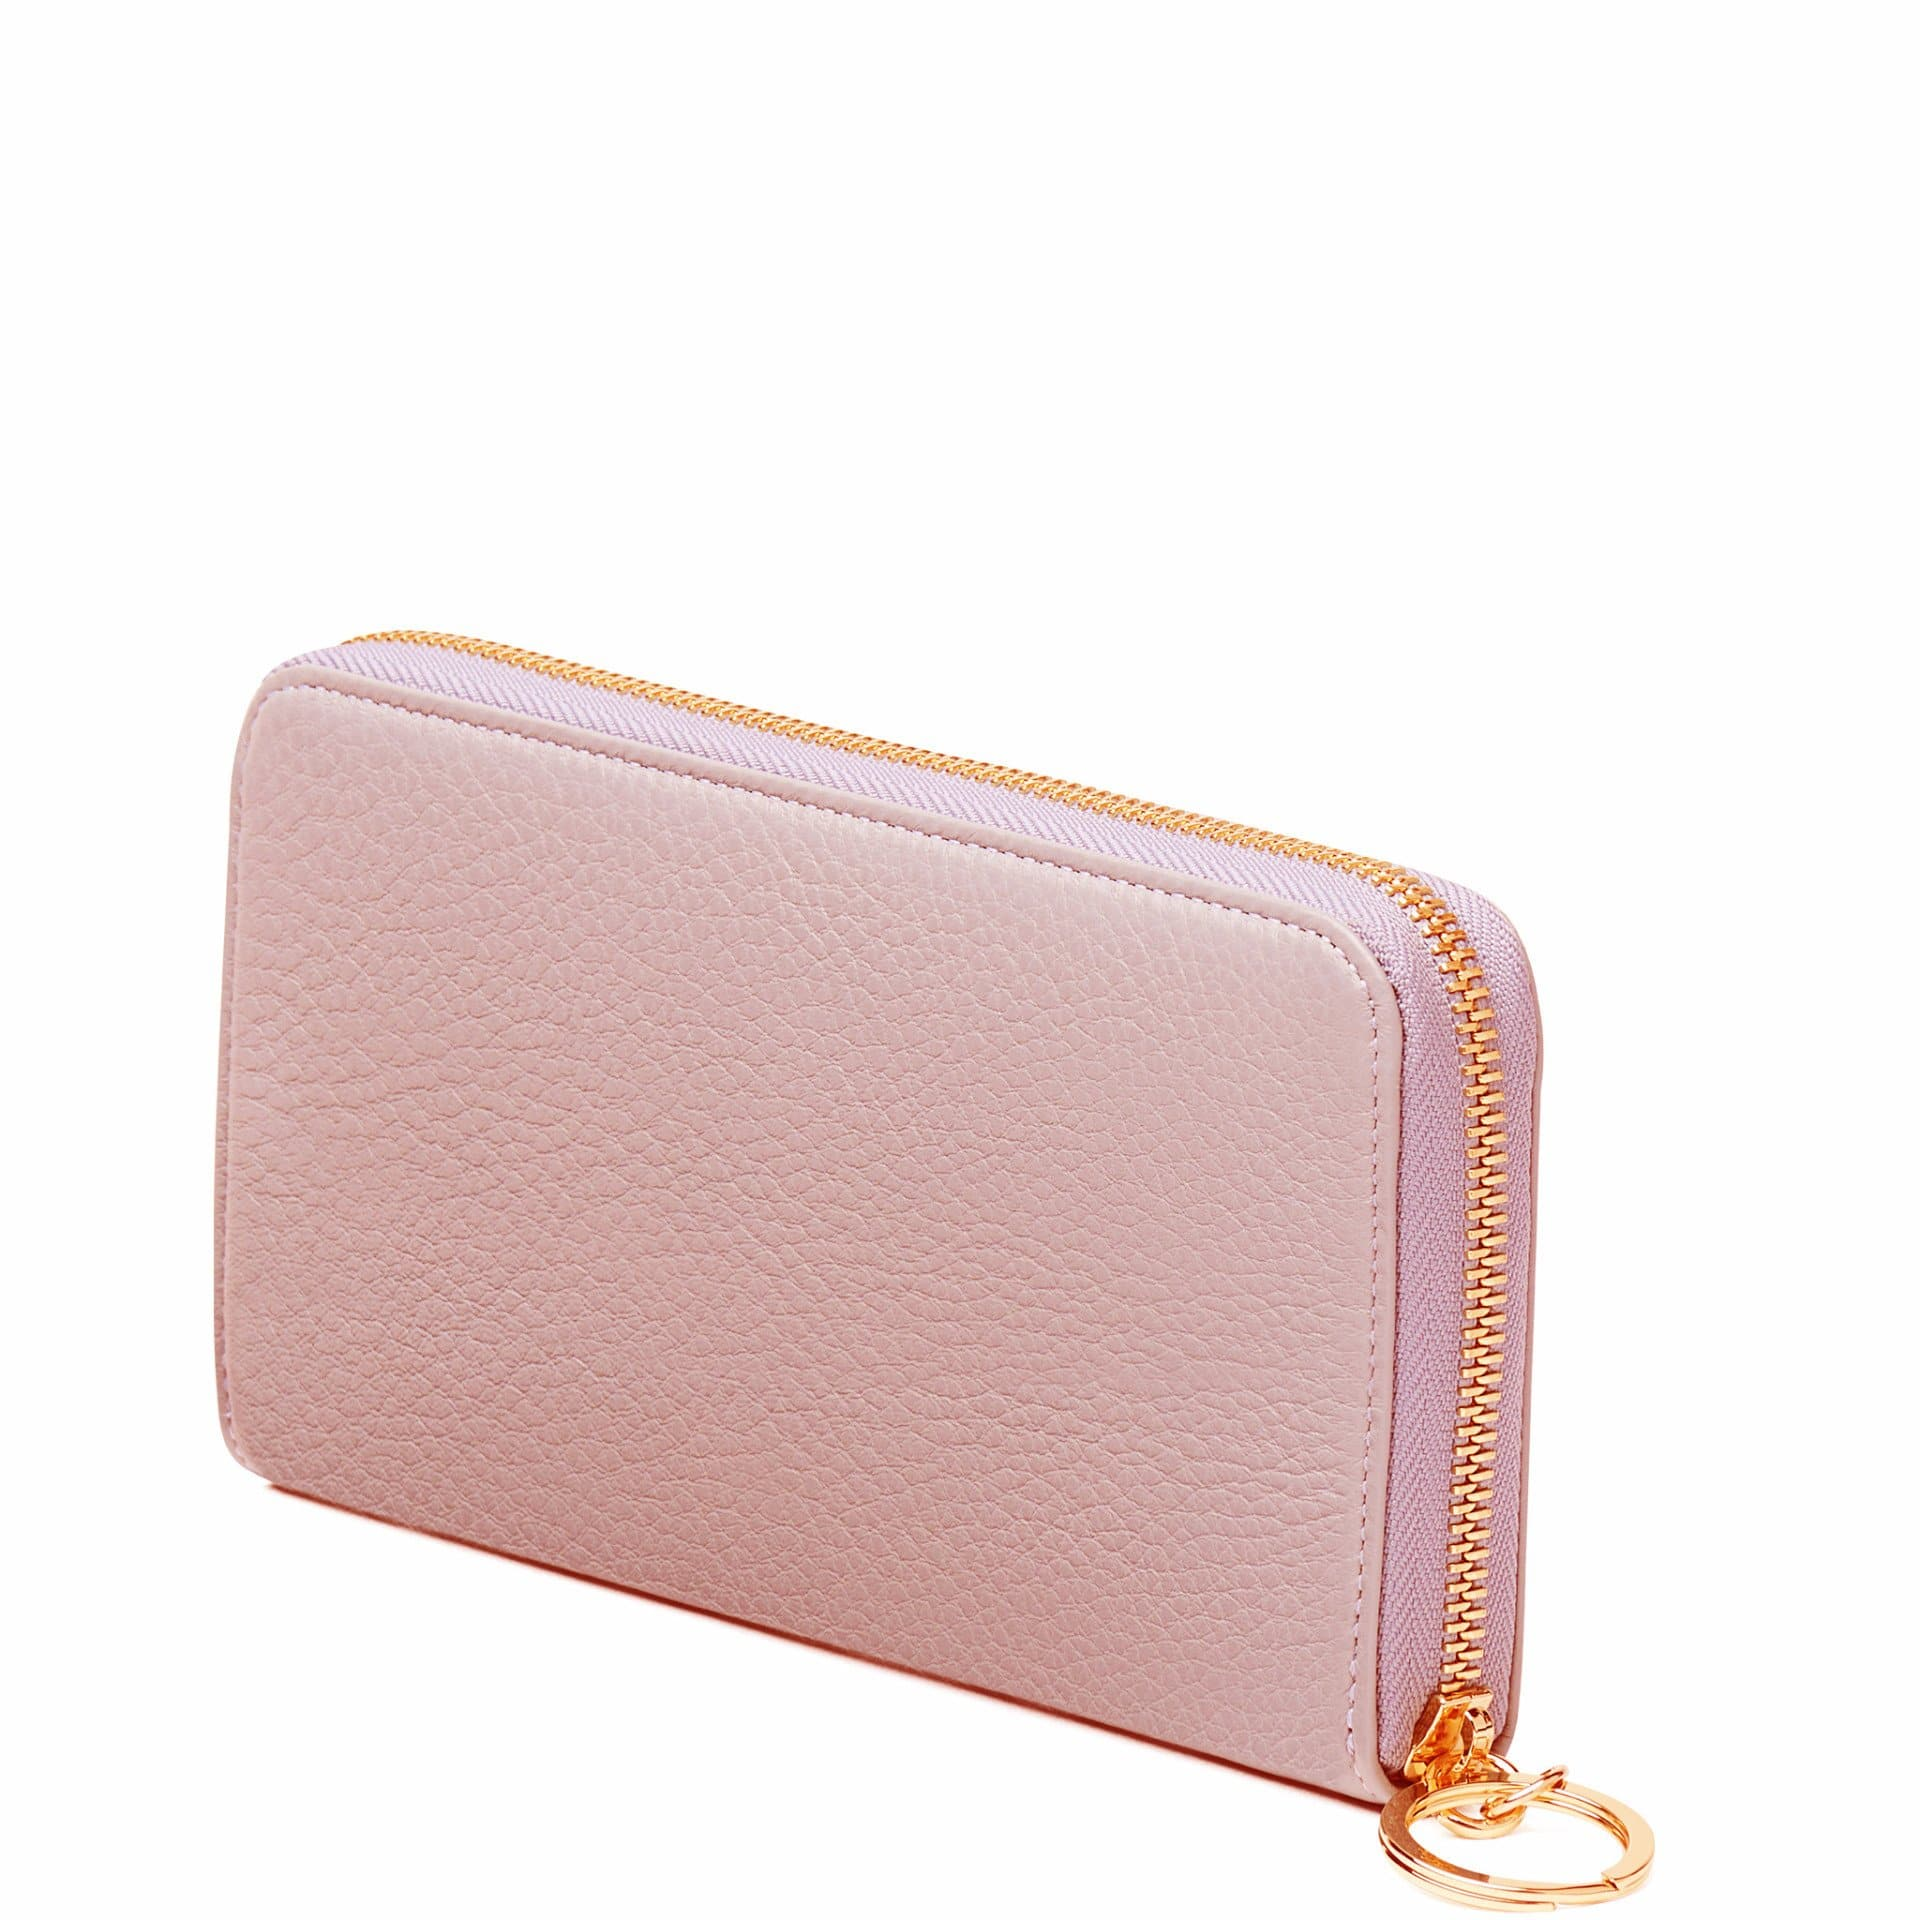 Full Zip Around Wallet - Rose Pink - OAD NEW YORK - 3